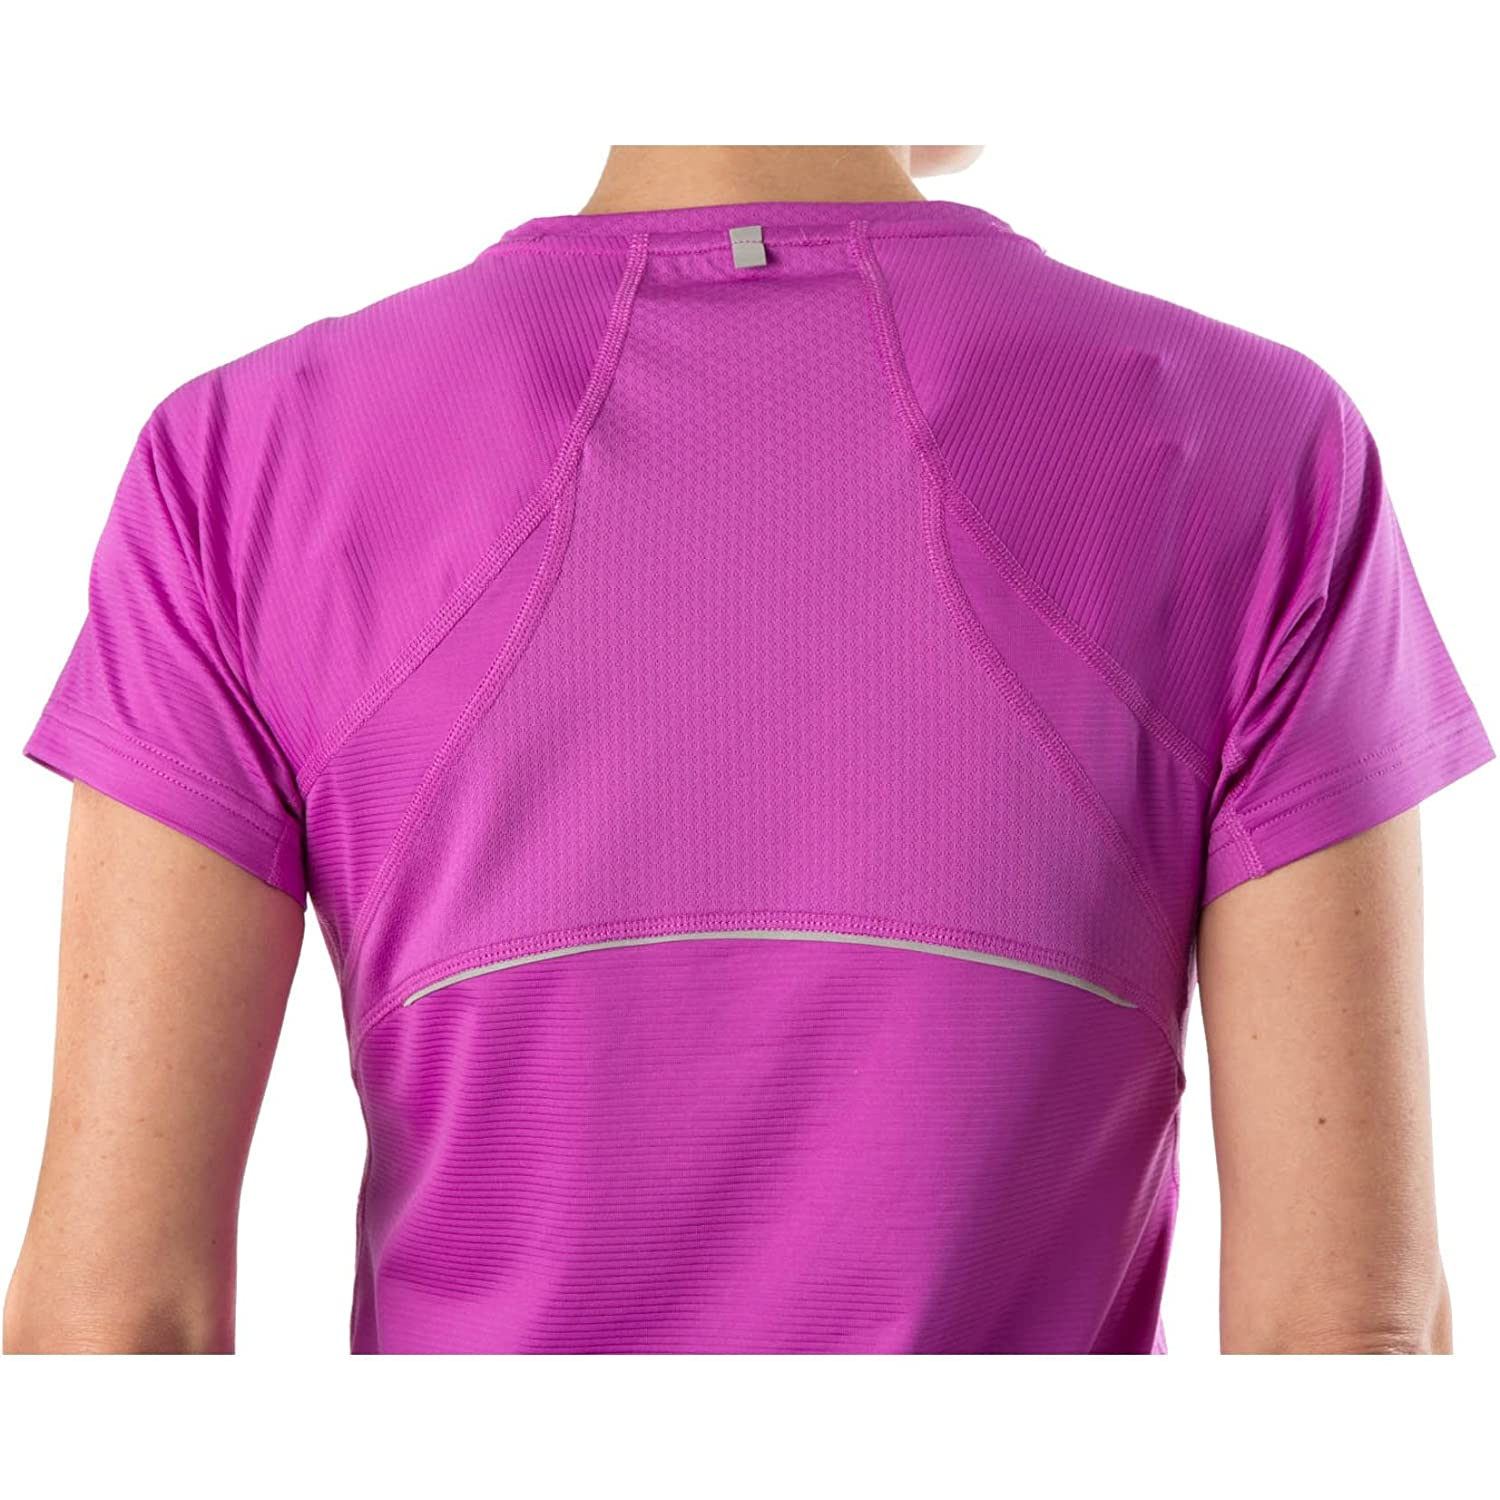 KS Womens Moisture Wicking Active Yoga Tee Small Pink Small Lily